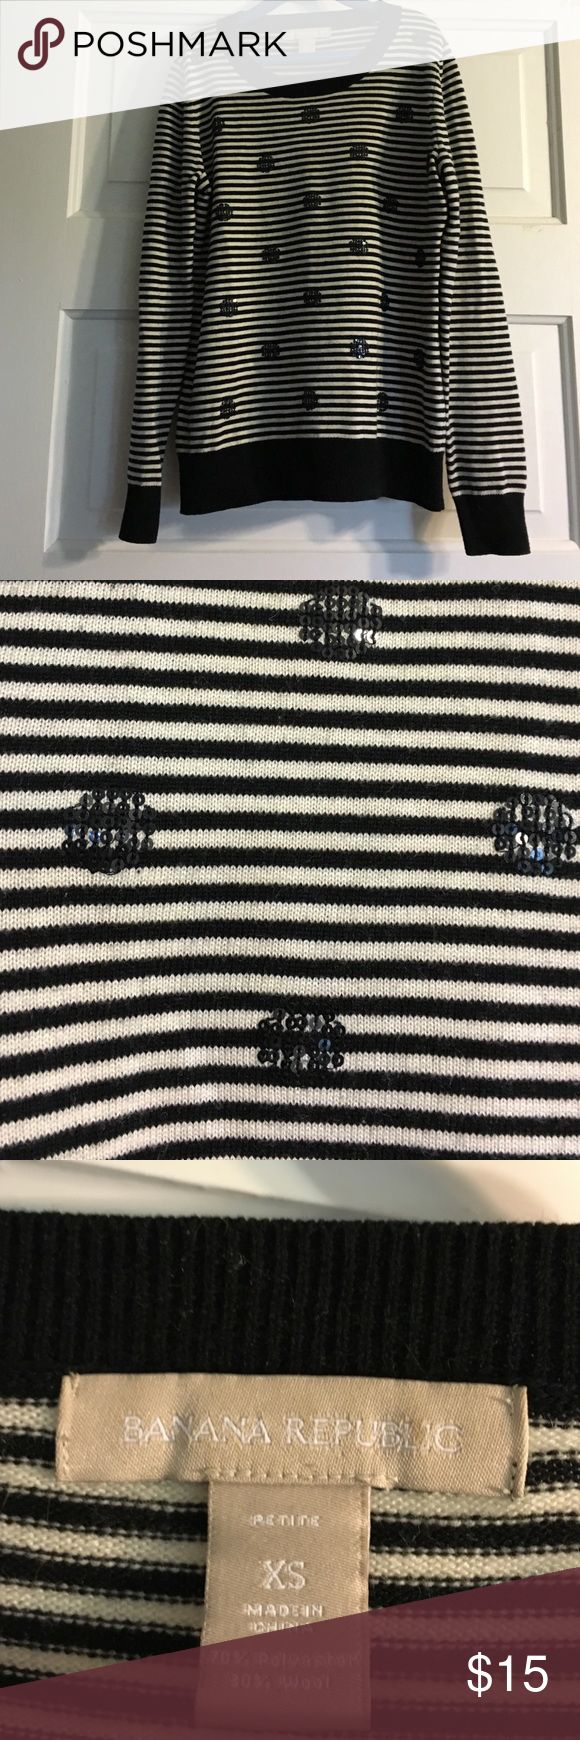 """Banana Republic Striped Sequin XS Petite Sweater Adorable sweater in good used condition. Slight pilling under arms. Very soft. 16"""" armpit to armpit. 20.5"""" top of shoulder to hem. 16"""" from under arm to bottom of sleeve. Banana Republic Sweaters Crew & Scoop Necks"""